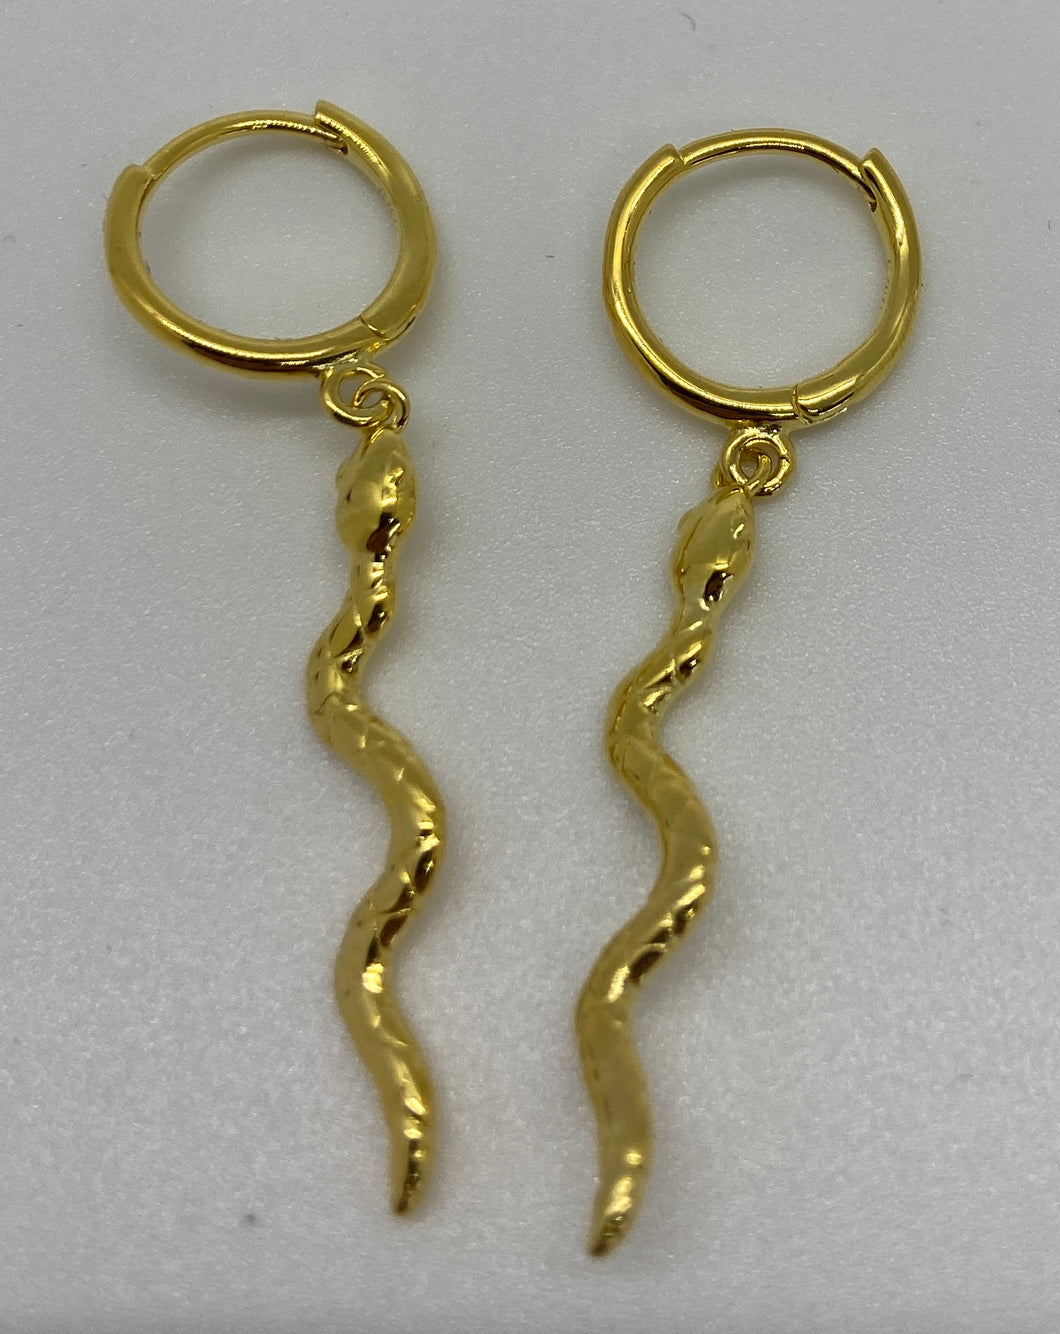 LONG SNAKE HOOP EARRINGS